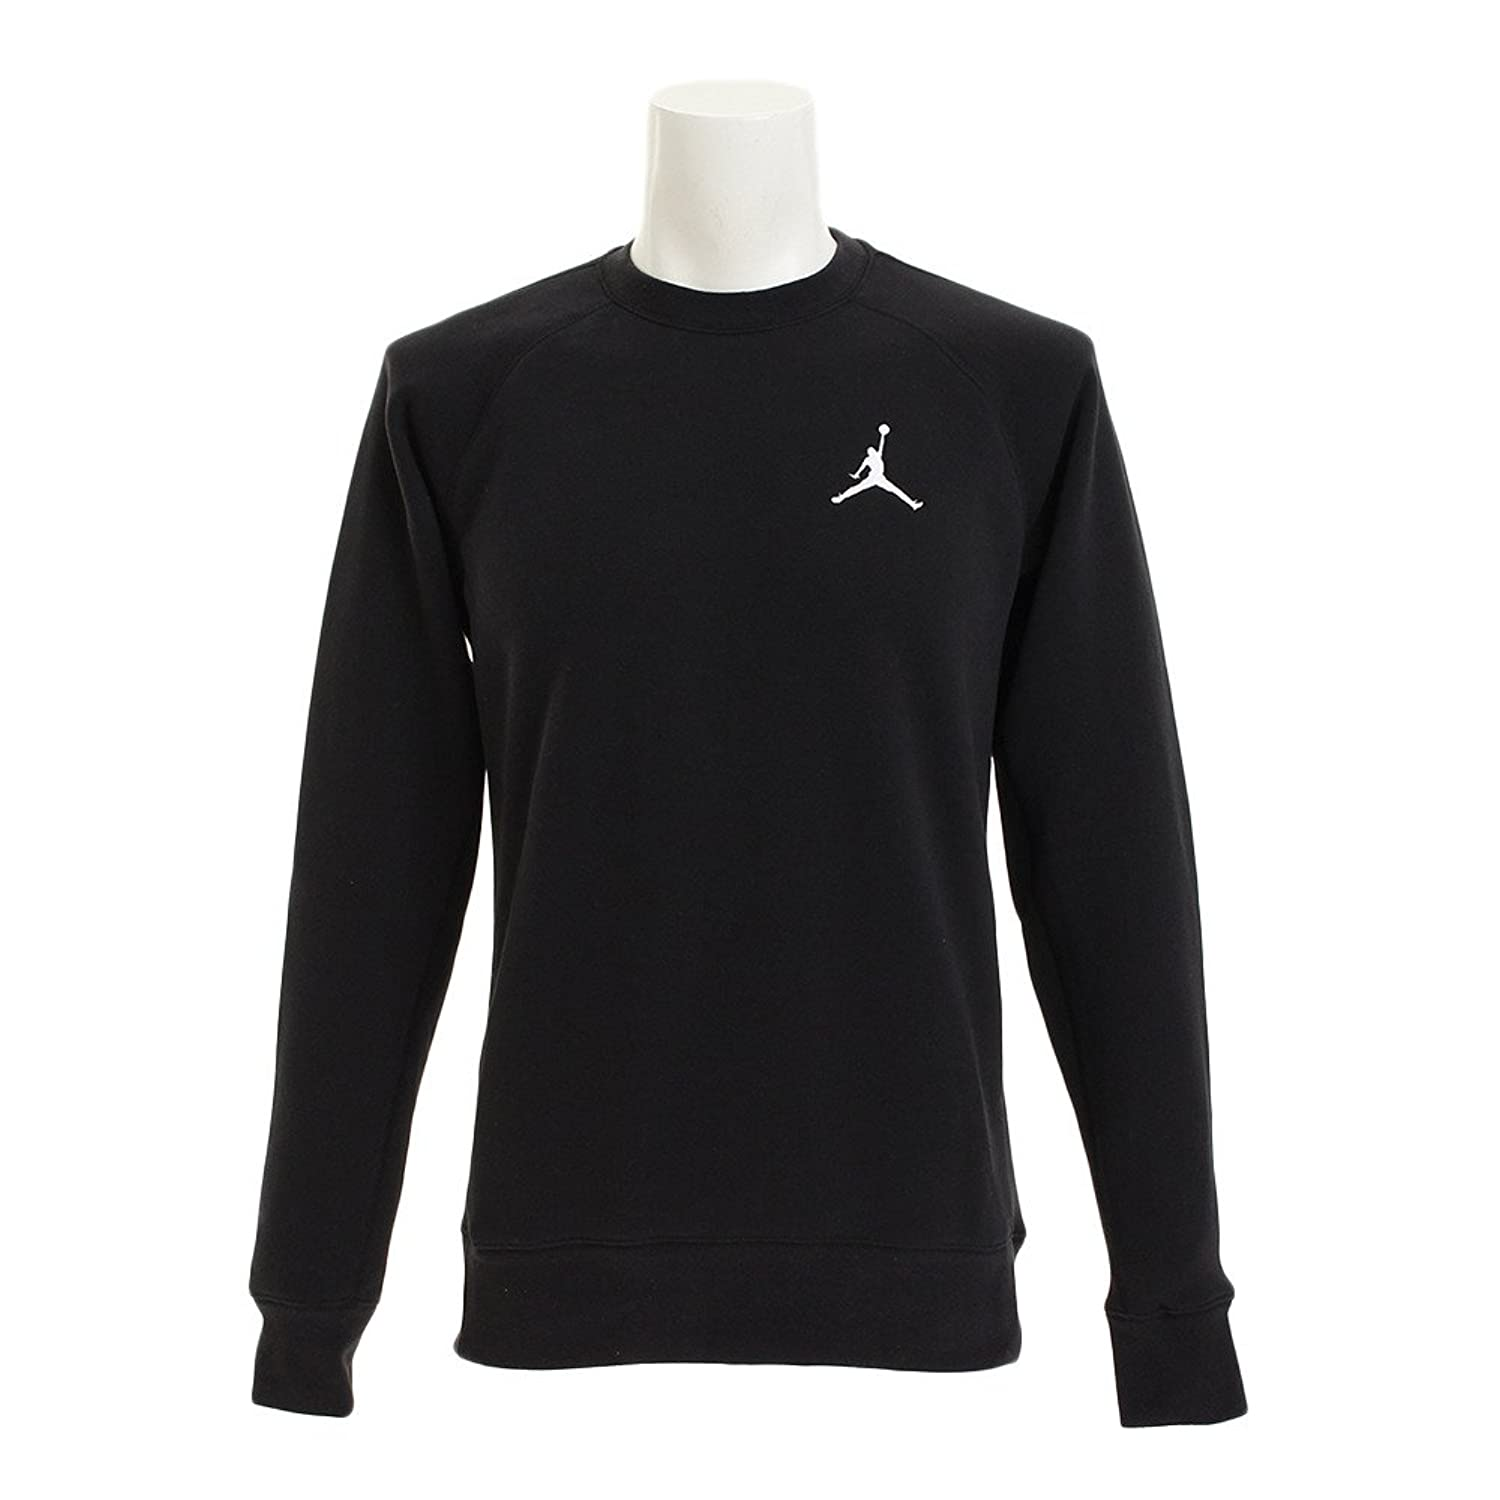 ab7bd51a3c30ae Brushed Terry fleece interior for a soft feel against the skin. Raglan  sleeves for natural range of motion. Rib cuffs and hem for snug fit. Jordan  Jumpman ...